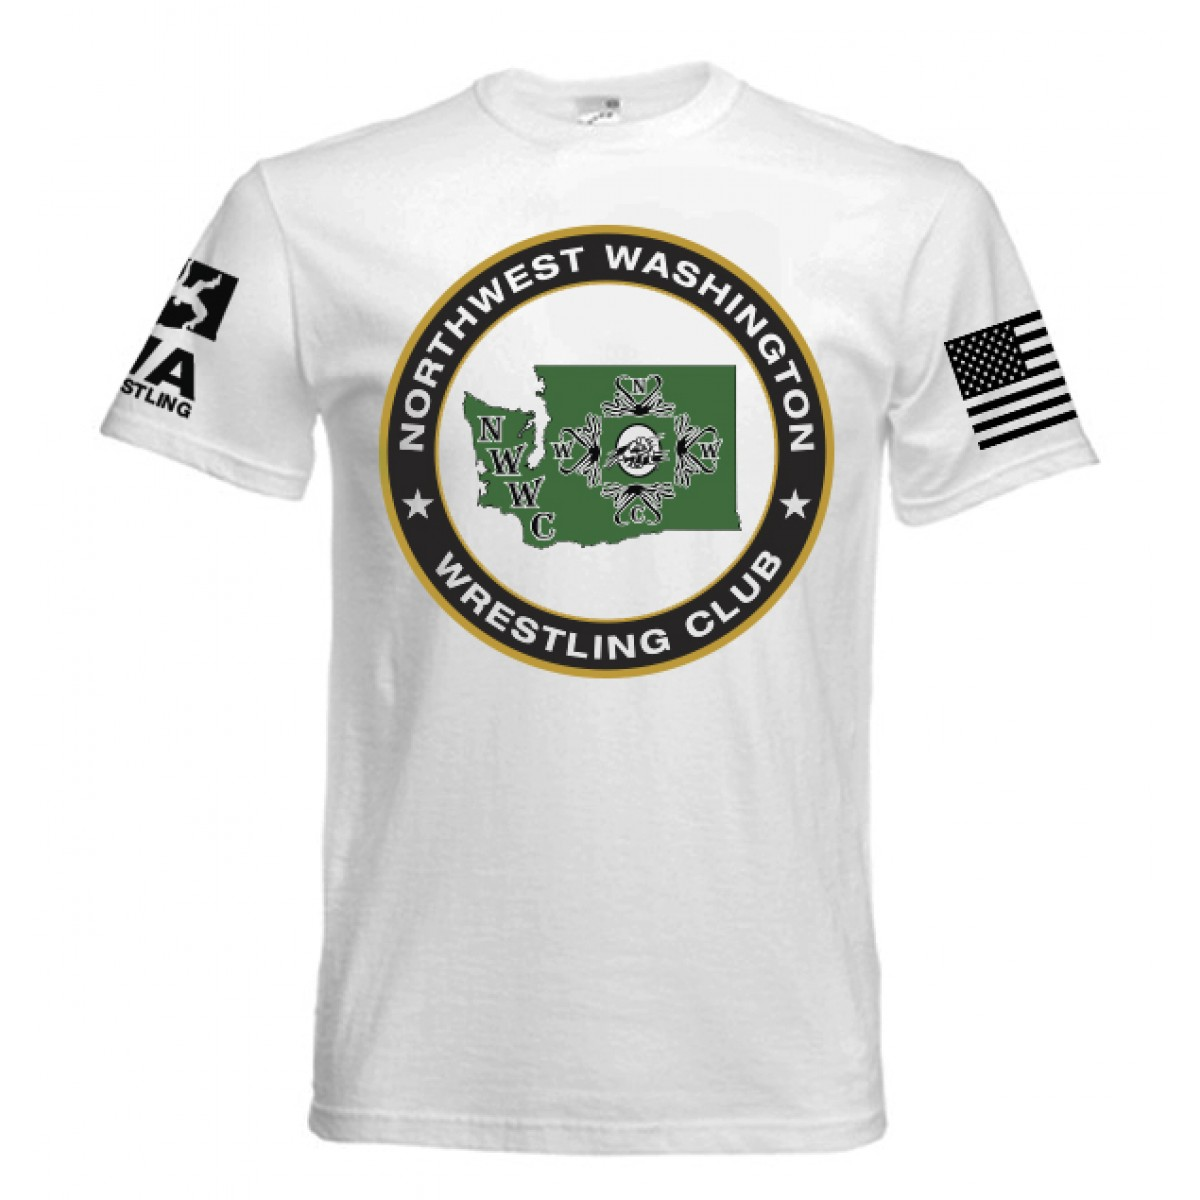 NWWC White T-shirt Green Logo-White-3XL